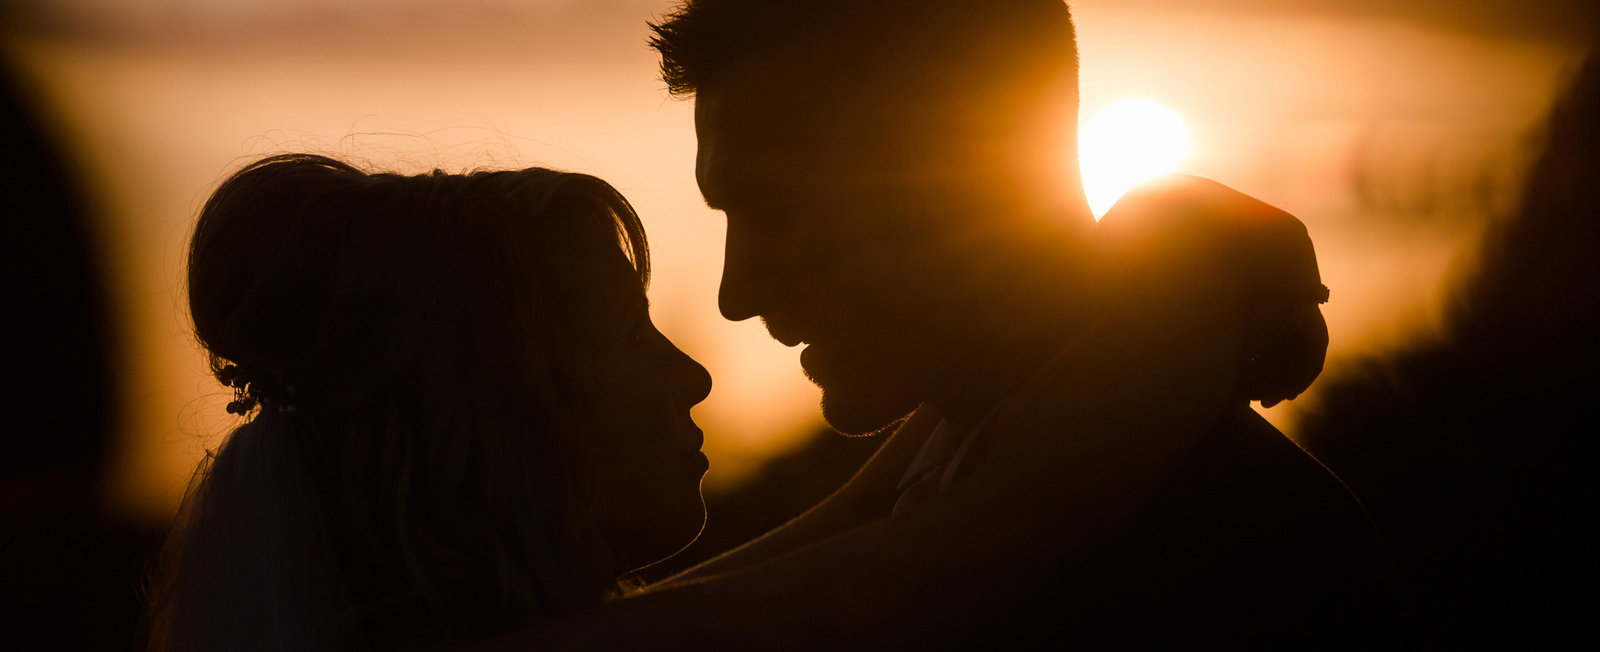 Taken by Adorlee at Golden Hour, this bride and groom have the perfect loving silhoutte embraced for the wedding portraits at sunset